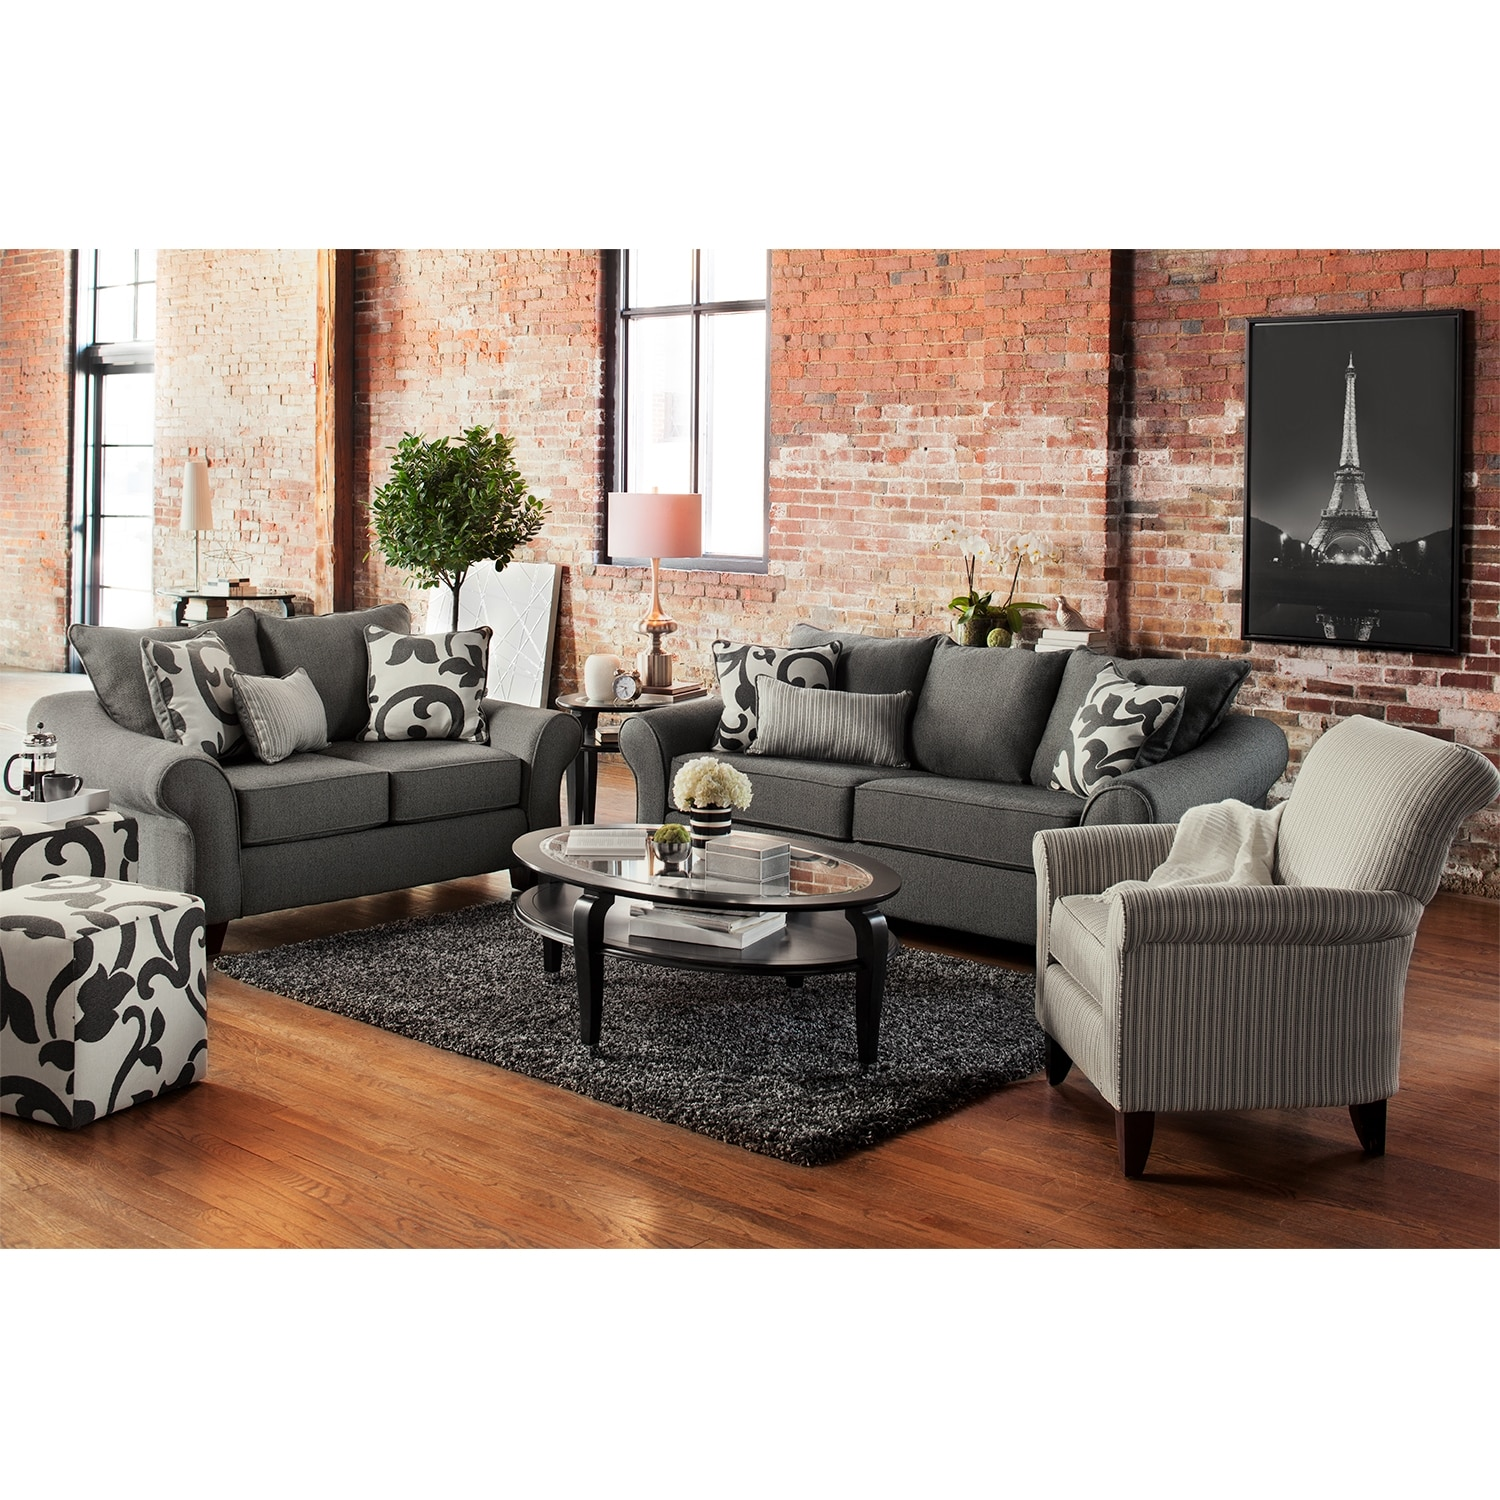 Colette gray sofa value city furniture for Sofa and 2 chairs living room